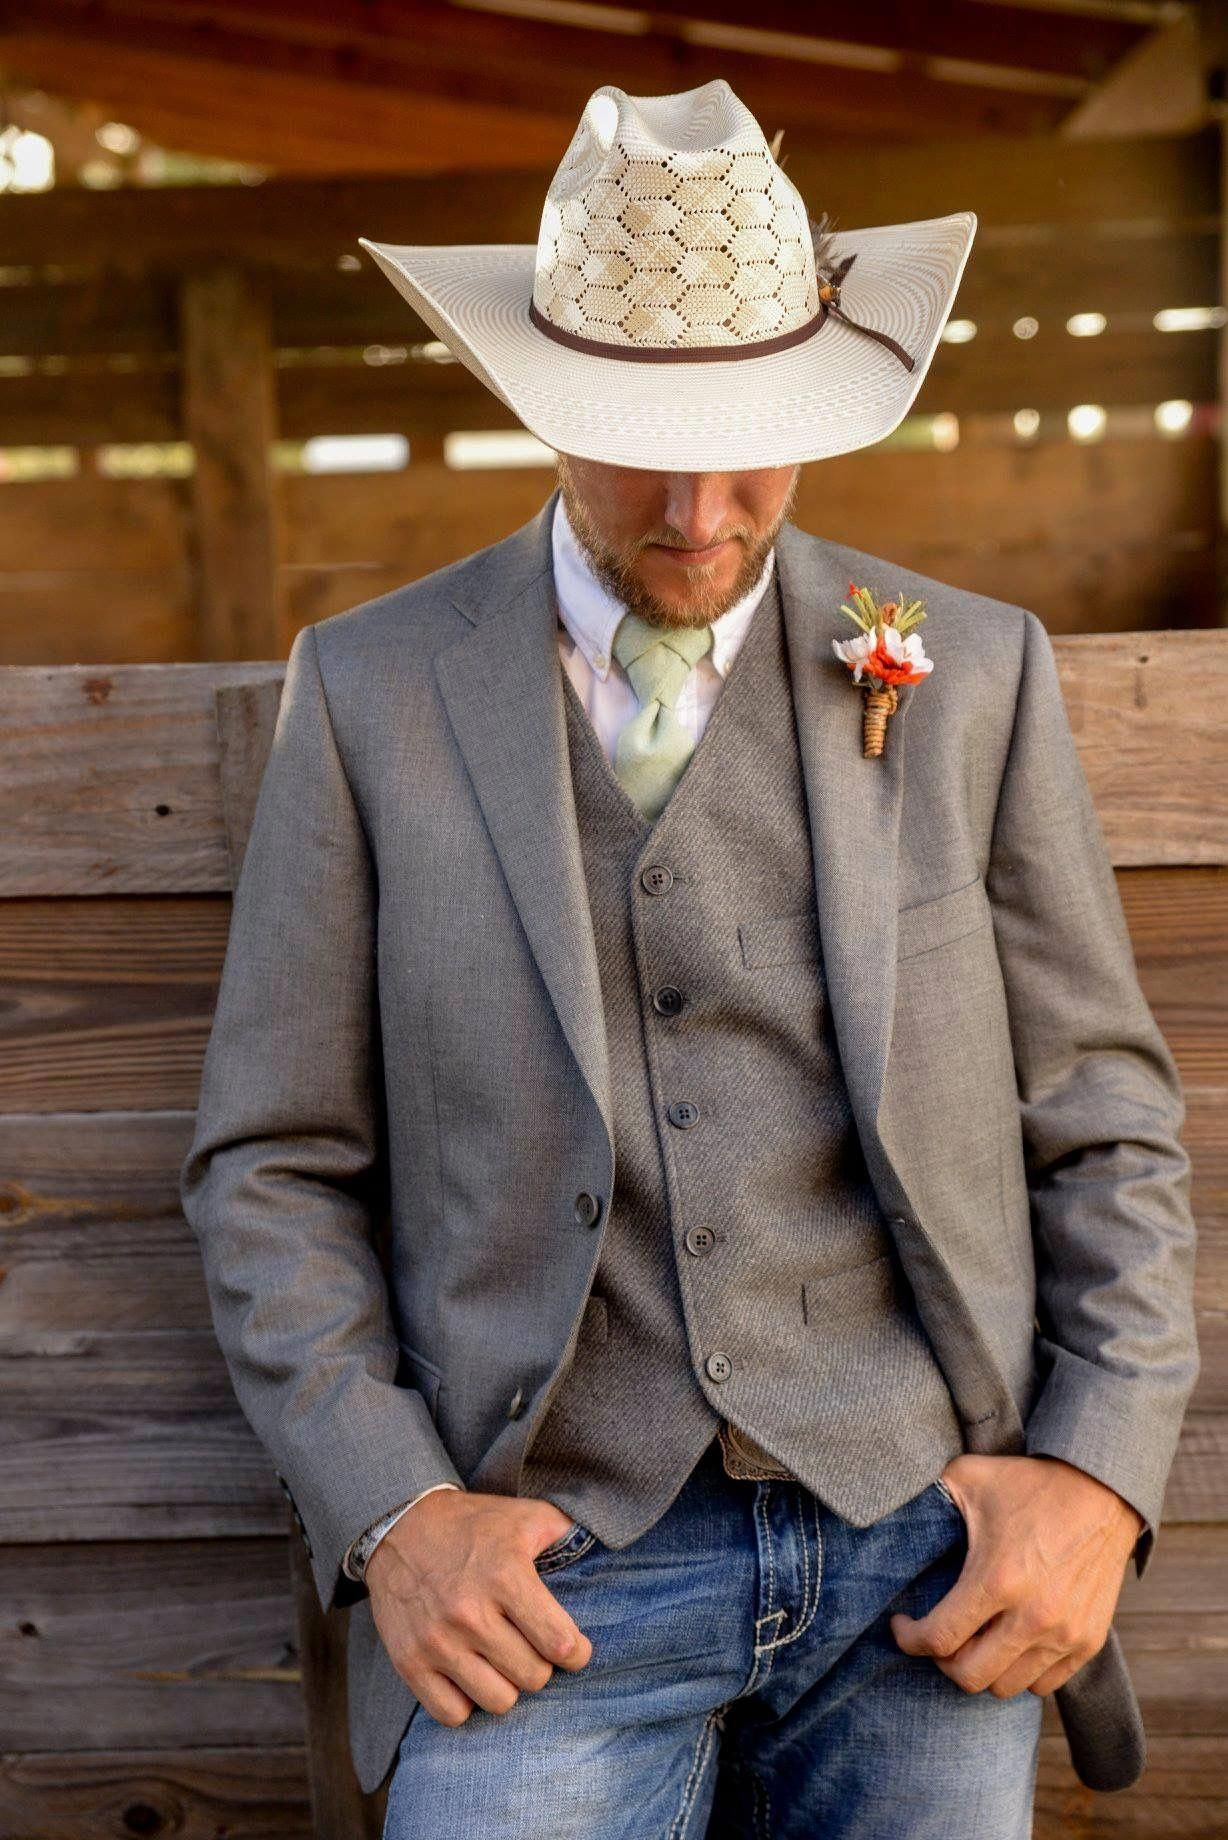 Understanding Different Types Of Wedding Dresses With Images Country Wedding Attire Wedding Groomsmen Attire Groom Wedding Attire